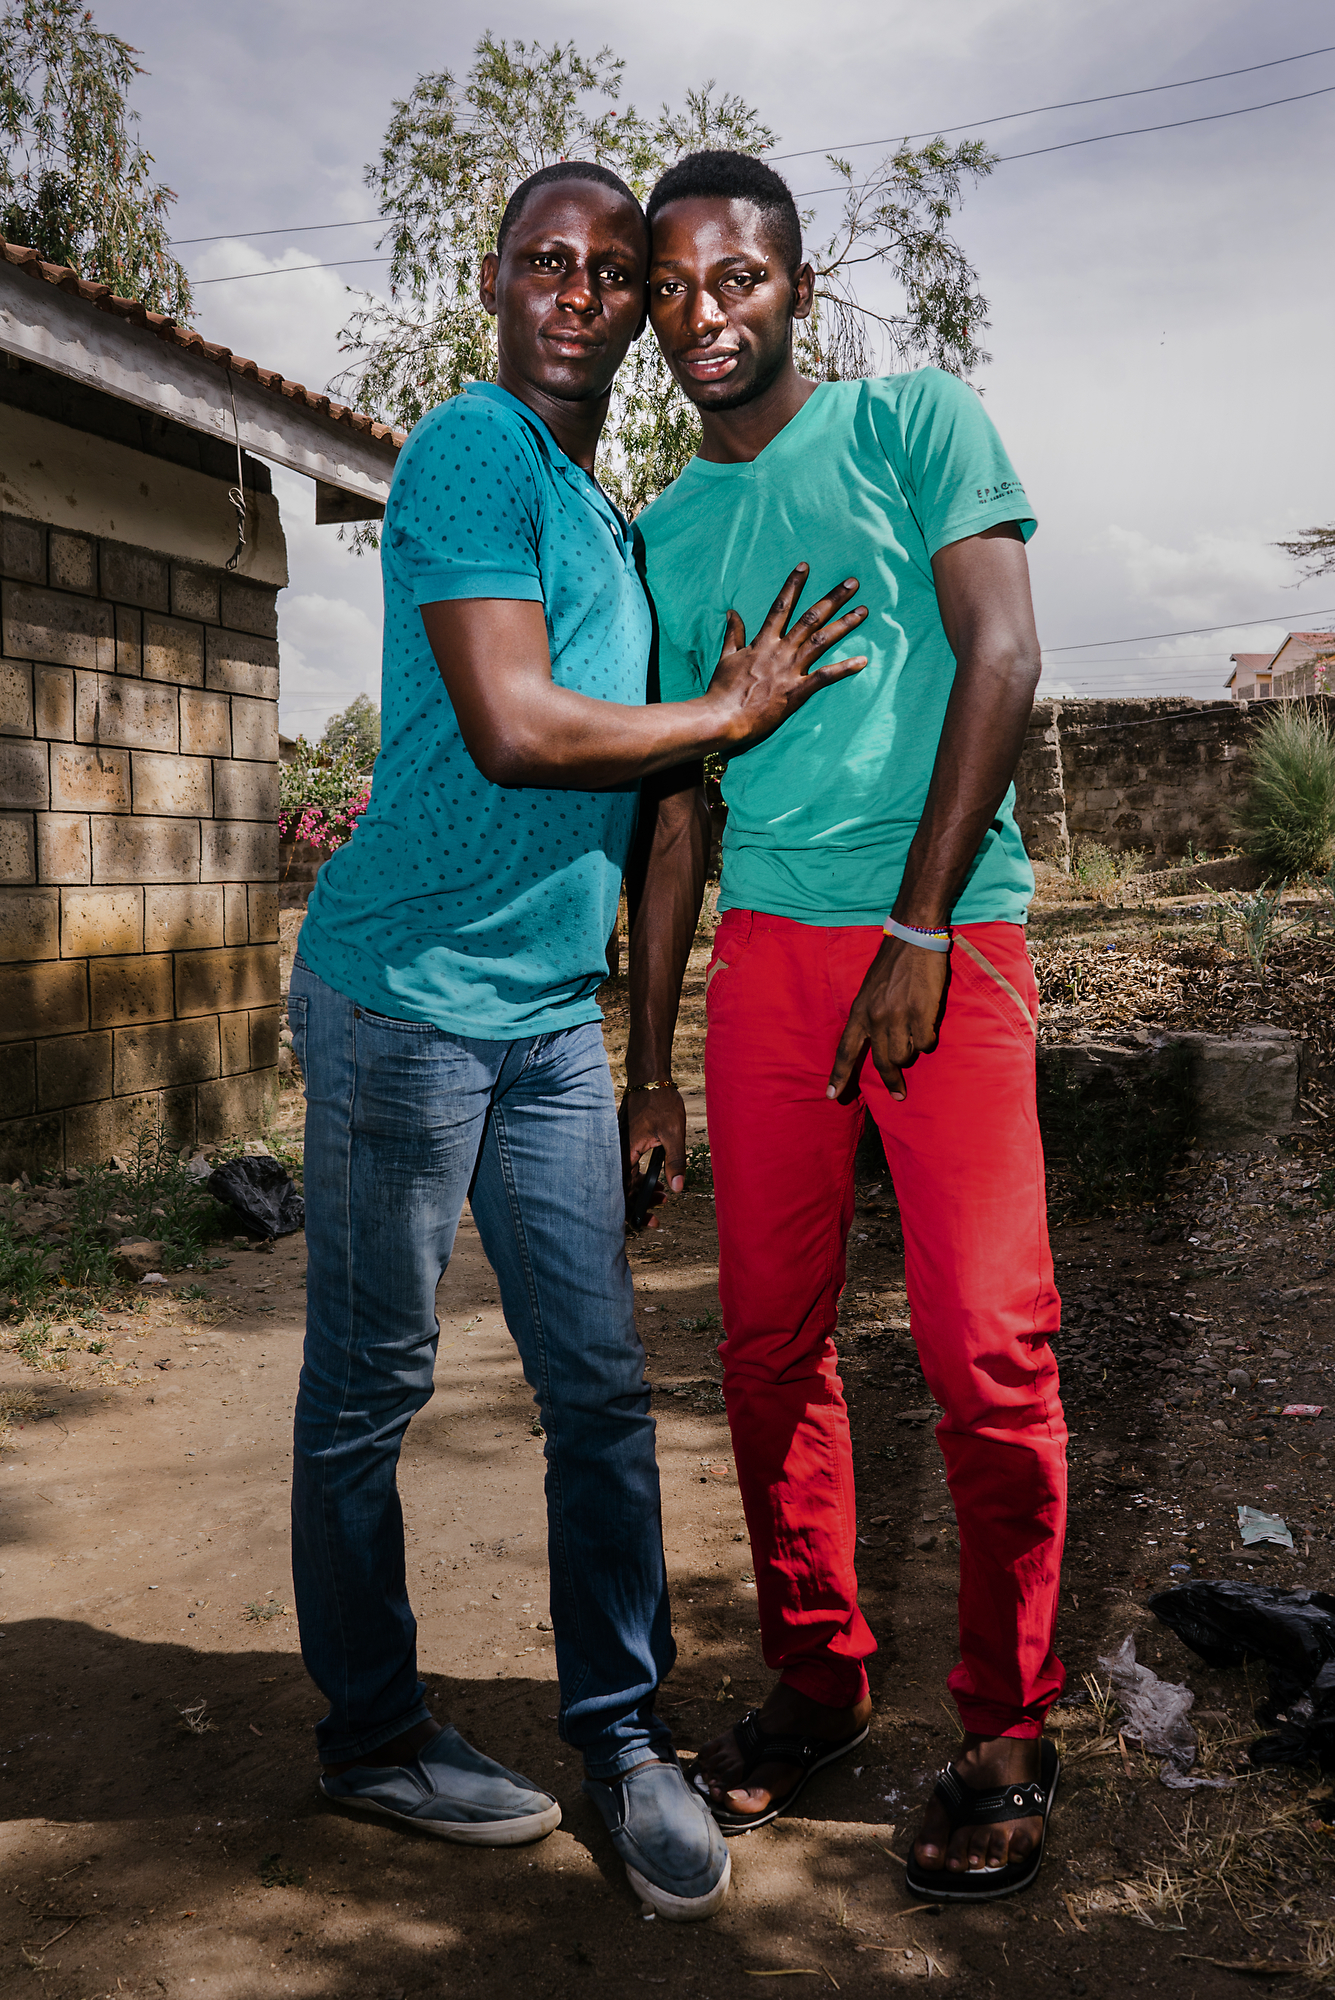 S. and J., both LGBT refugees from Uganda, pose for a portrait outside the home they lived in in a town just outside of Nairobi, Kenya.